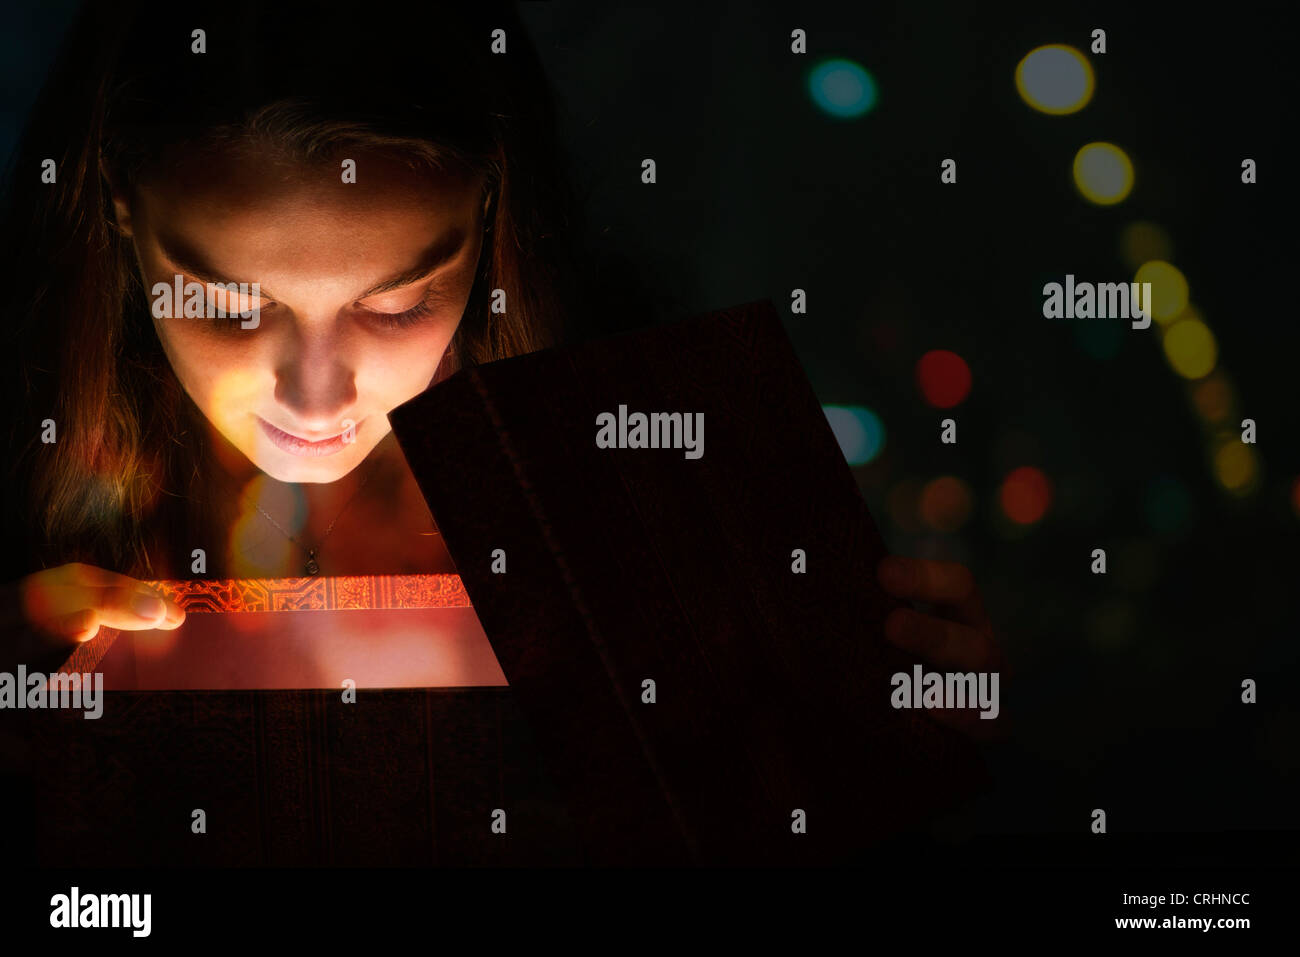 Young woman illuminated by light from within gift box - Stock Image